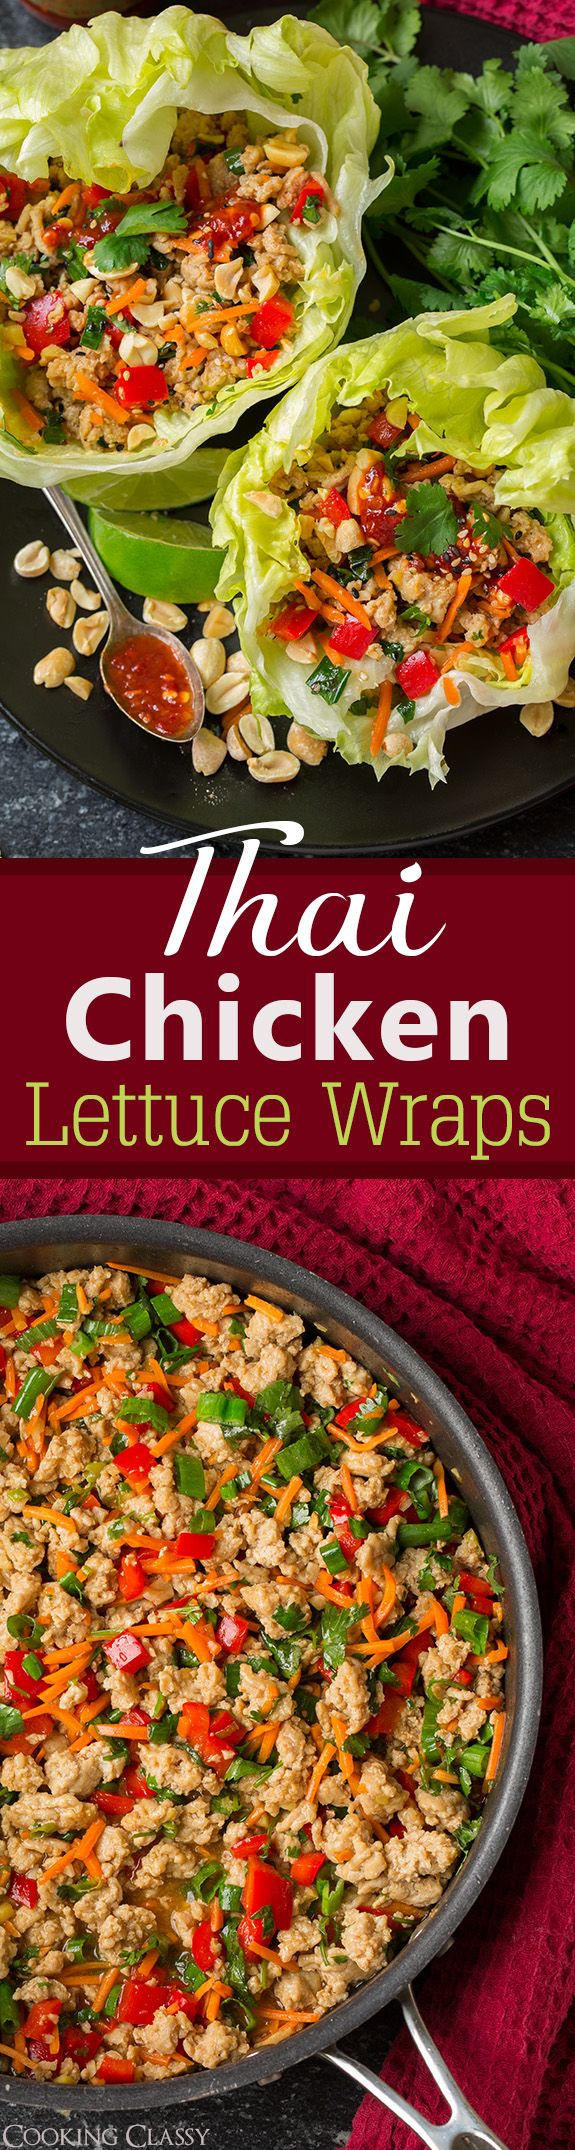 Thai Chicken Lettuce Wraps - flavorful, easy, love the crunch! Will definitely make these again and again!